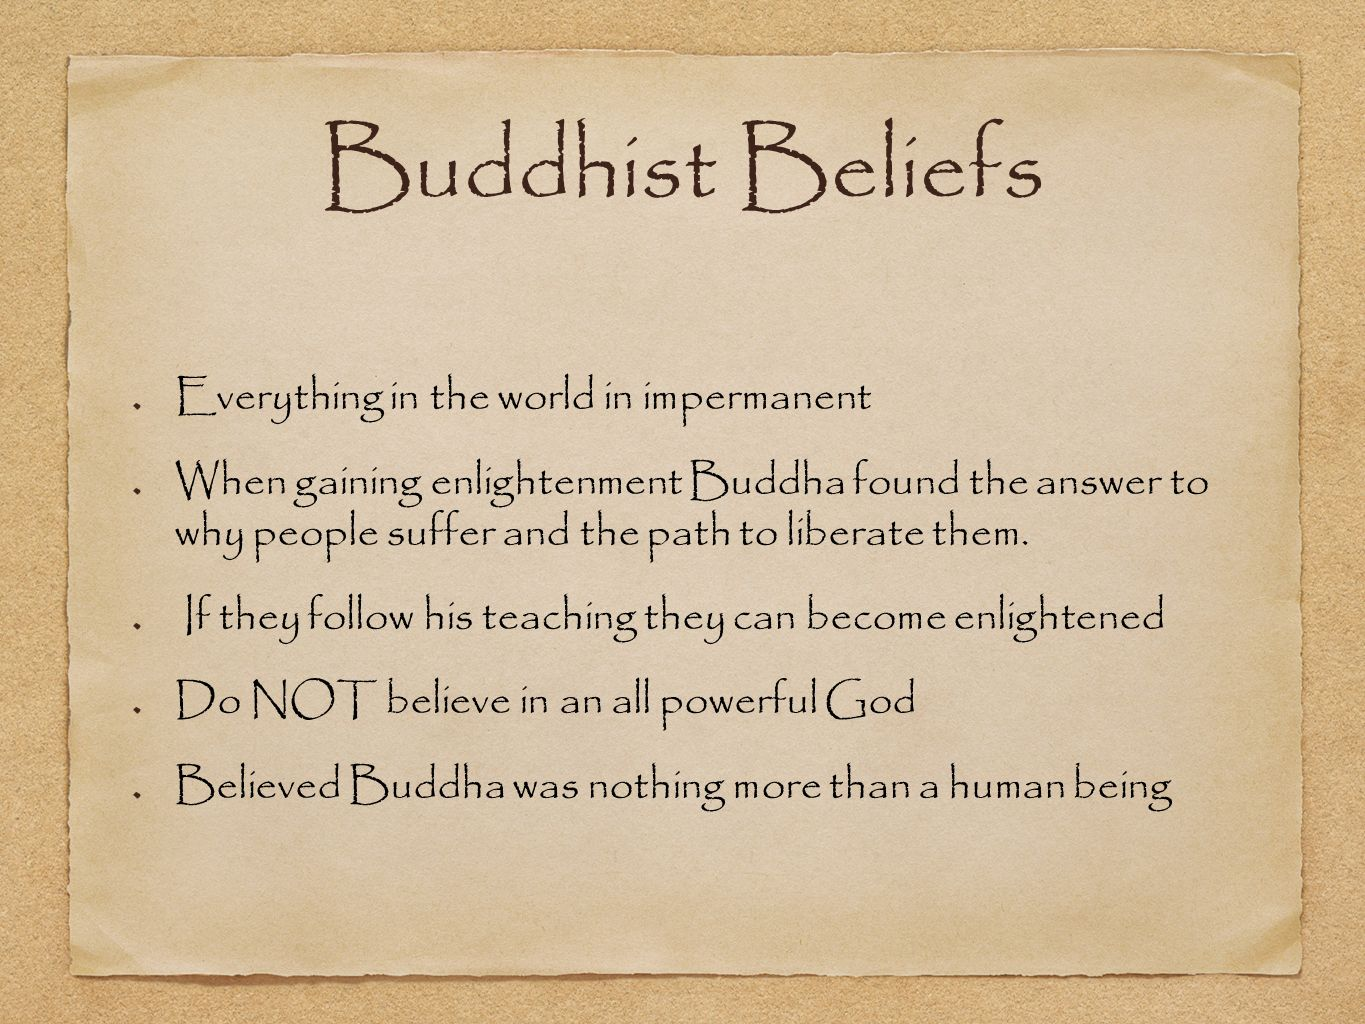 buddhist beliefs Buddhism is a religion that was founded by siddhartha gautama (the buddha) more than 2,500 years ago in india with about 470 million followers, scholars consider buddhism one of the major.